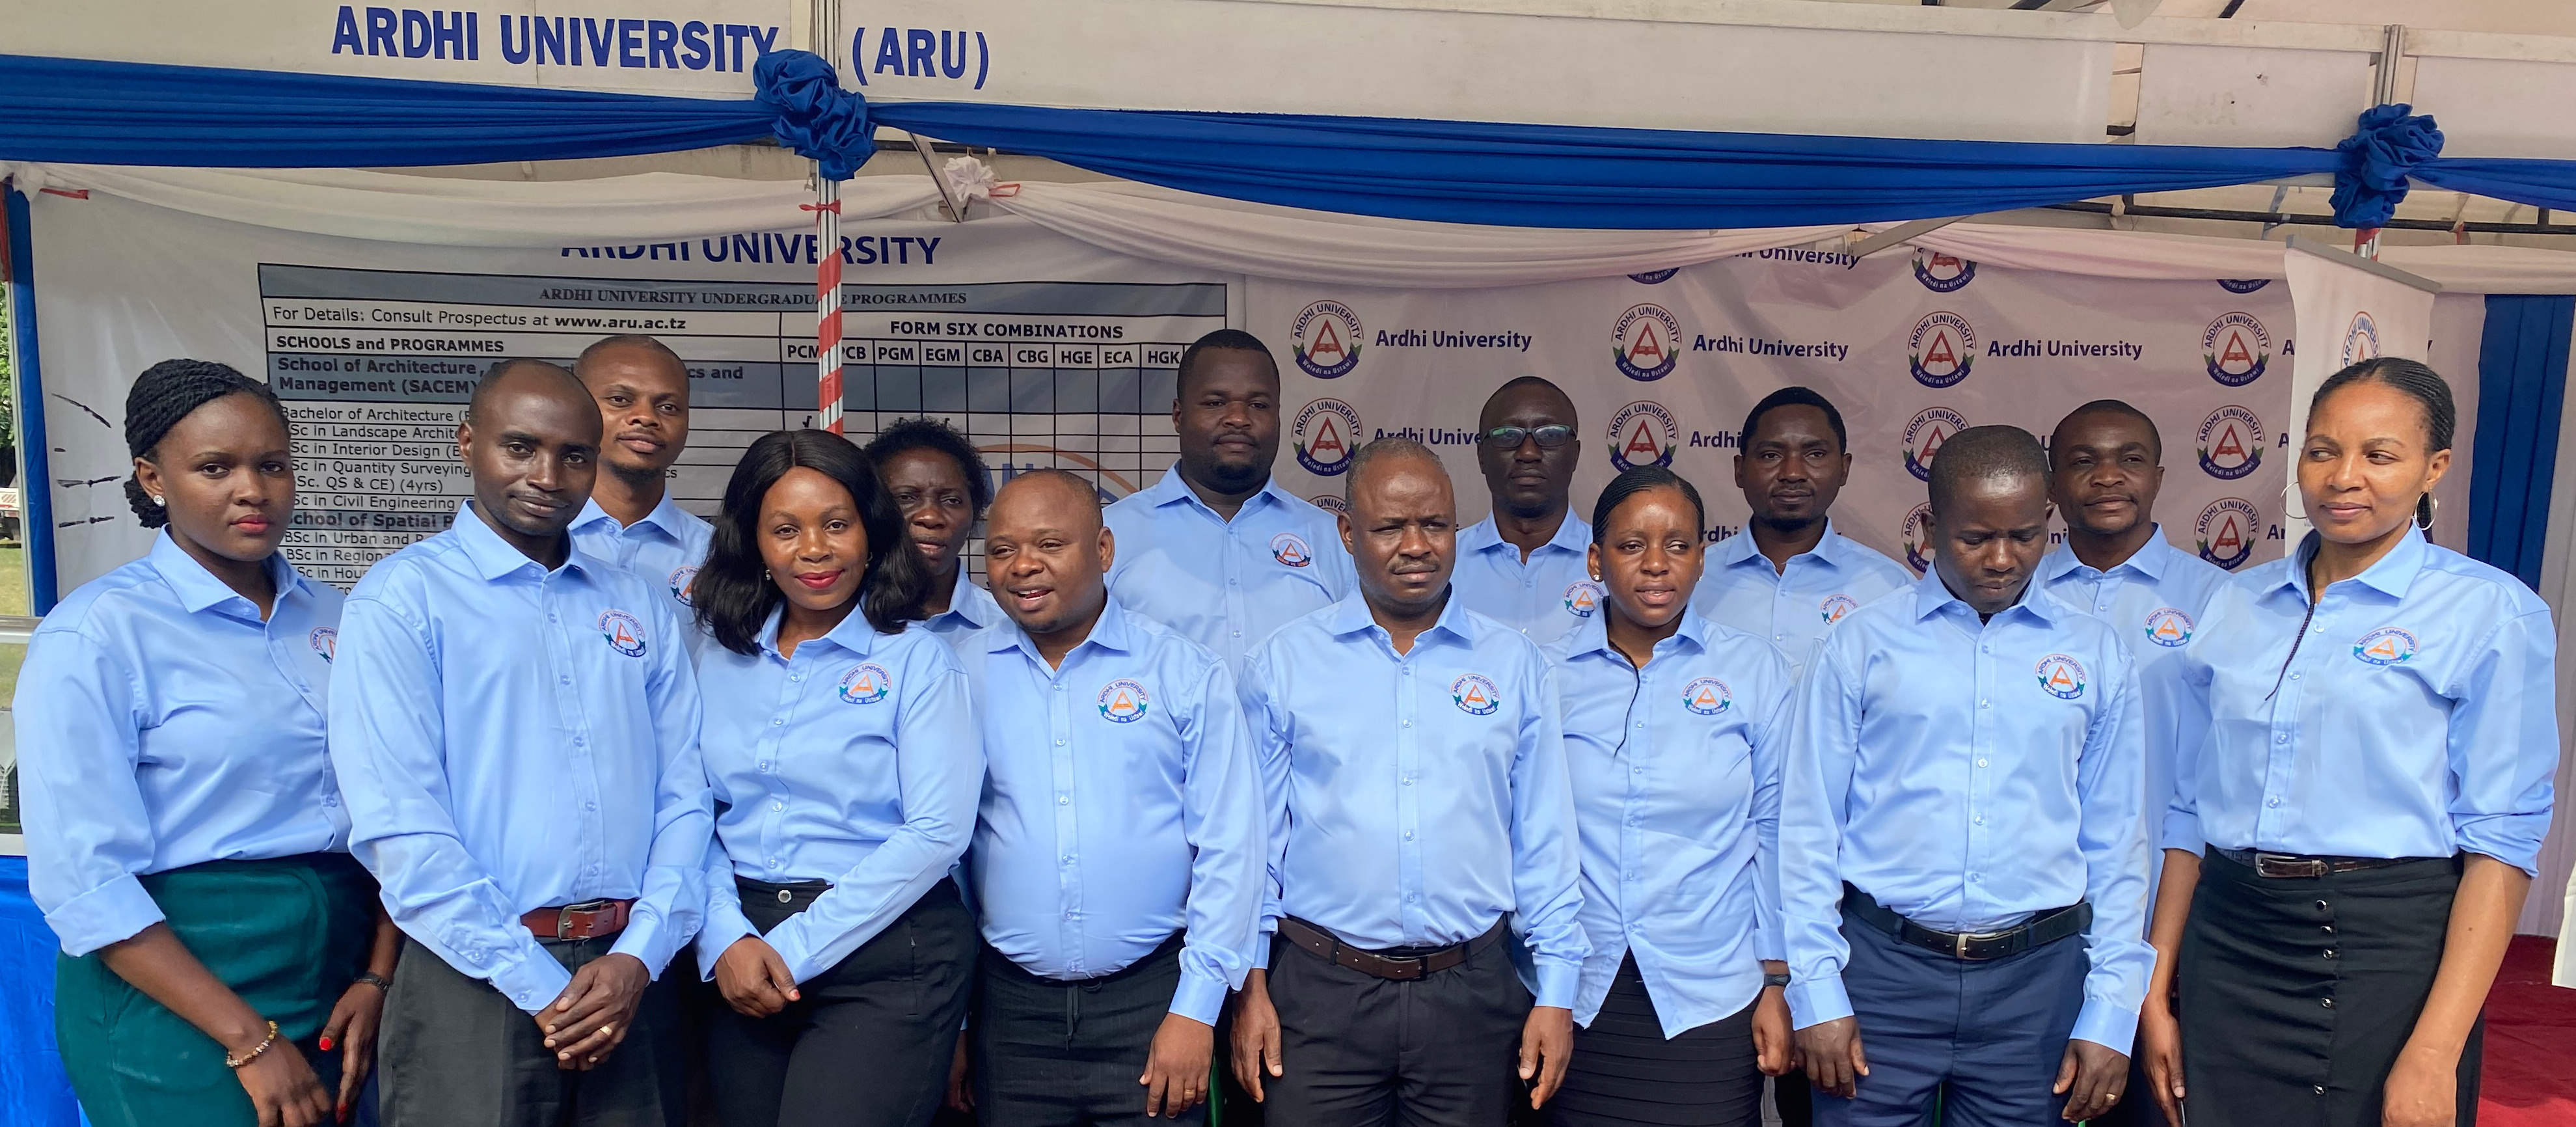 Ardhi University team during the 15th   Exhibition on Higher Education Science and Technology held at Mnazi Moja Grounds, Dar es Salaam.